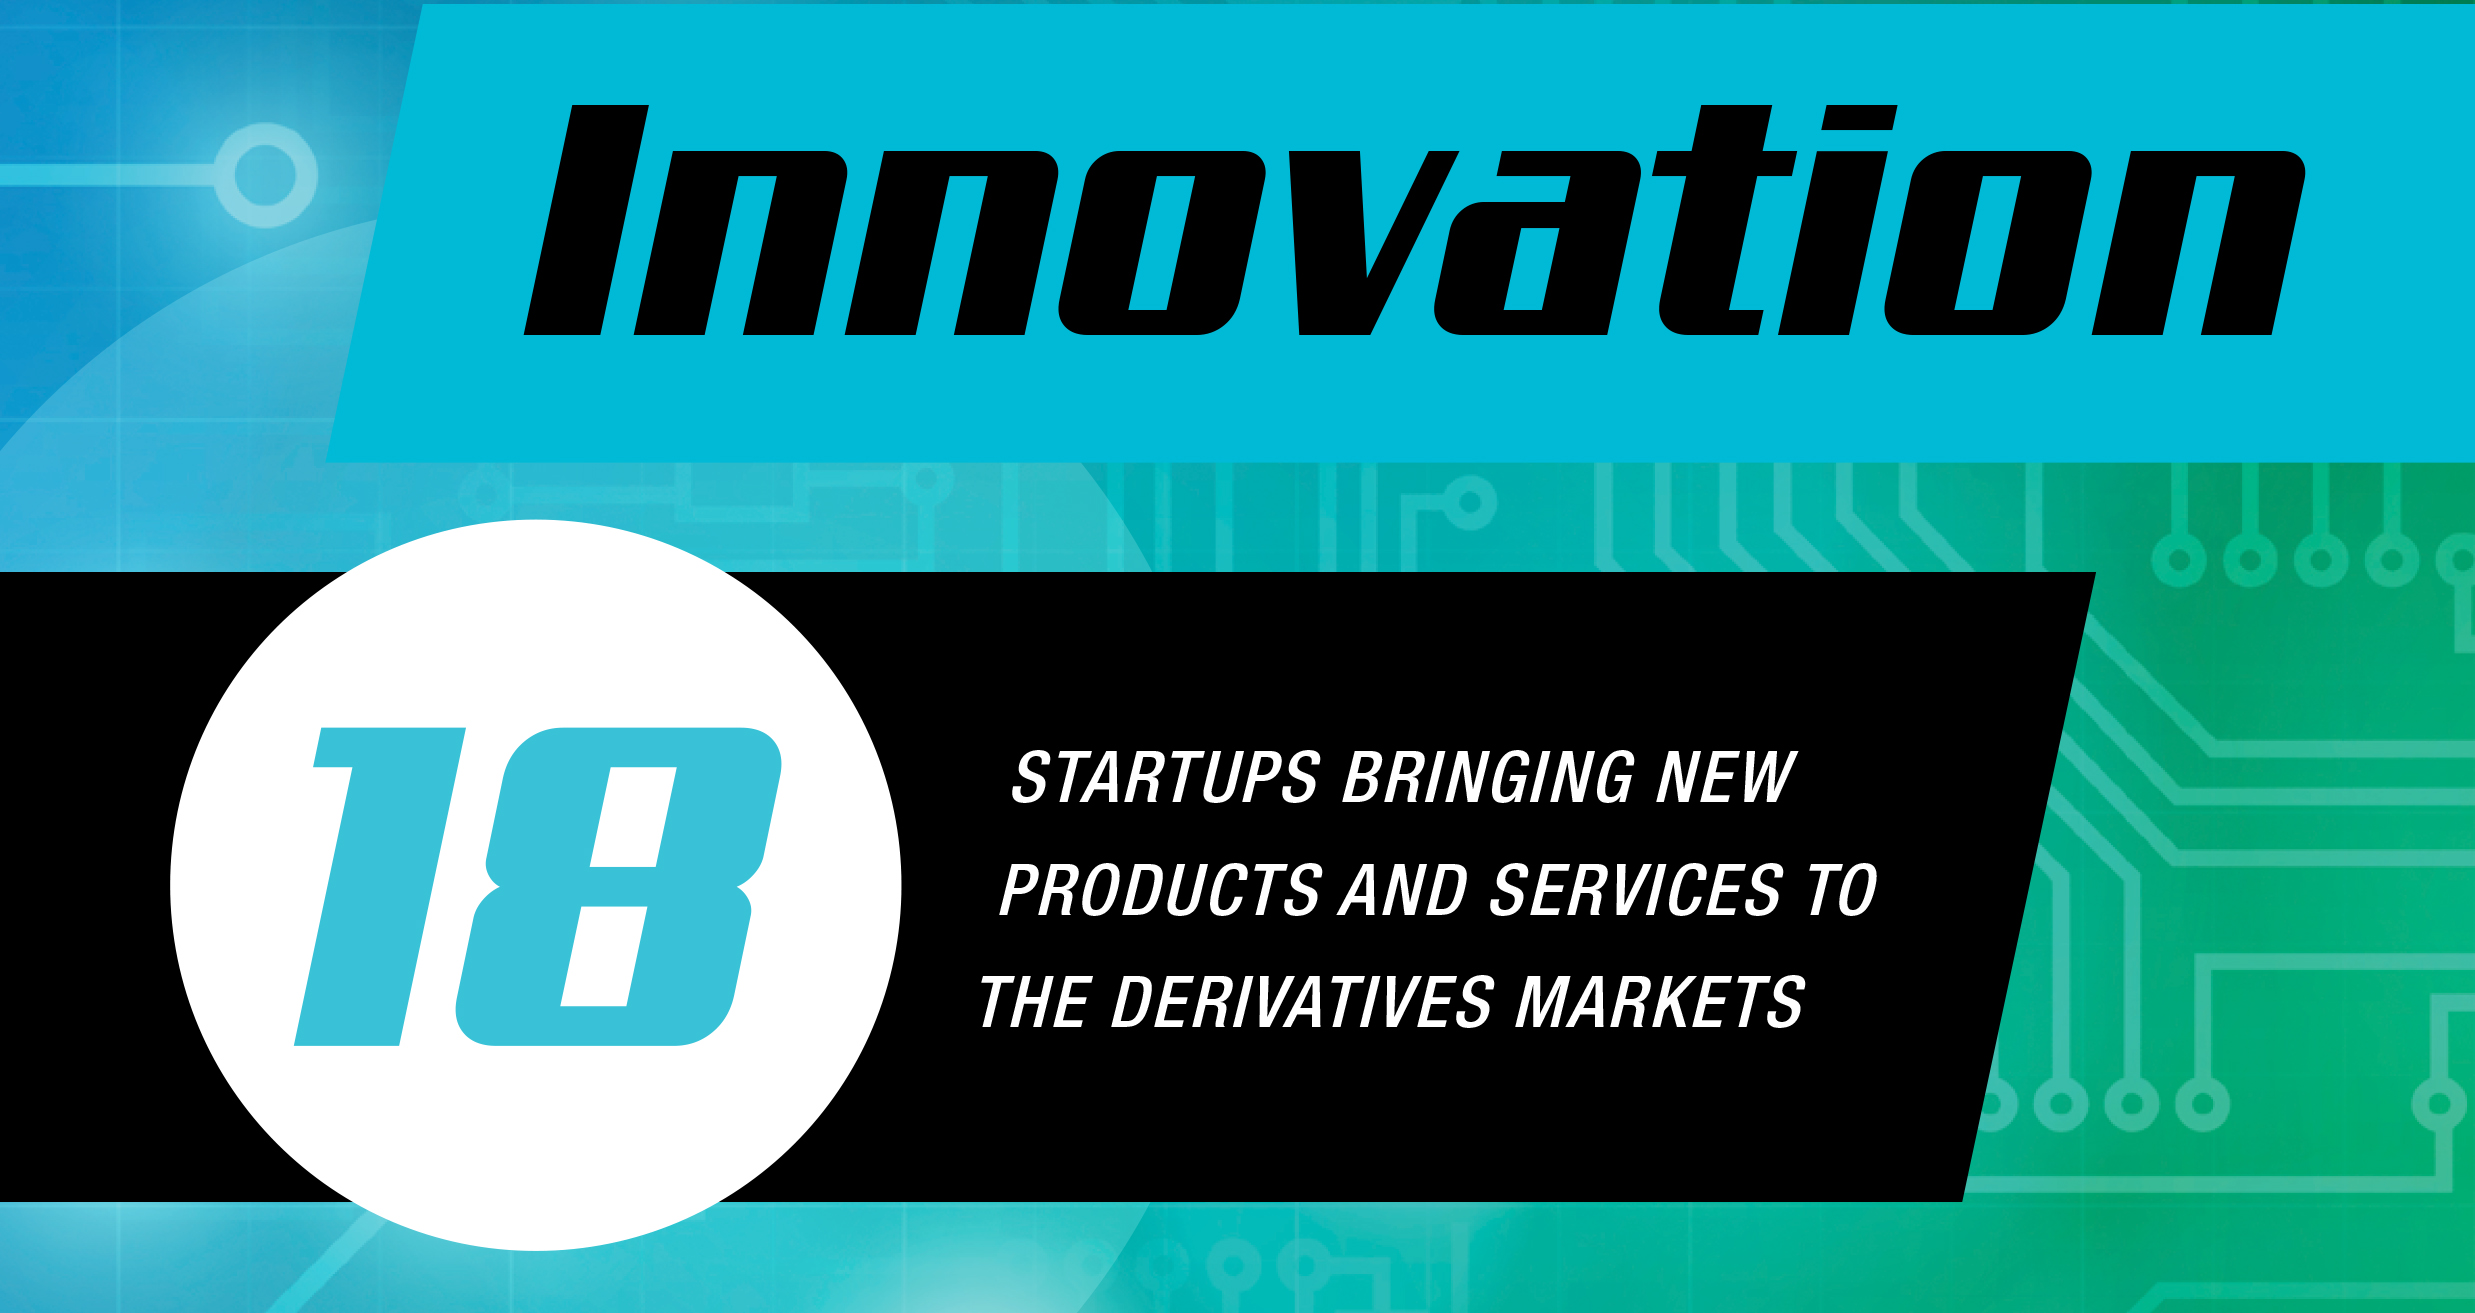 Innovation in the derivative markets